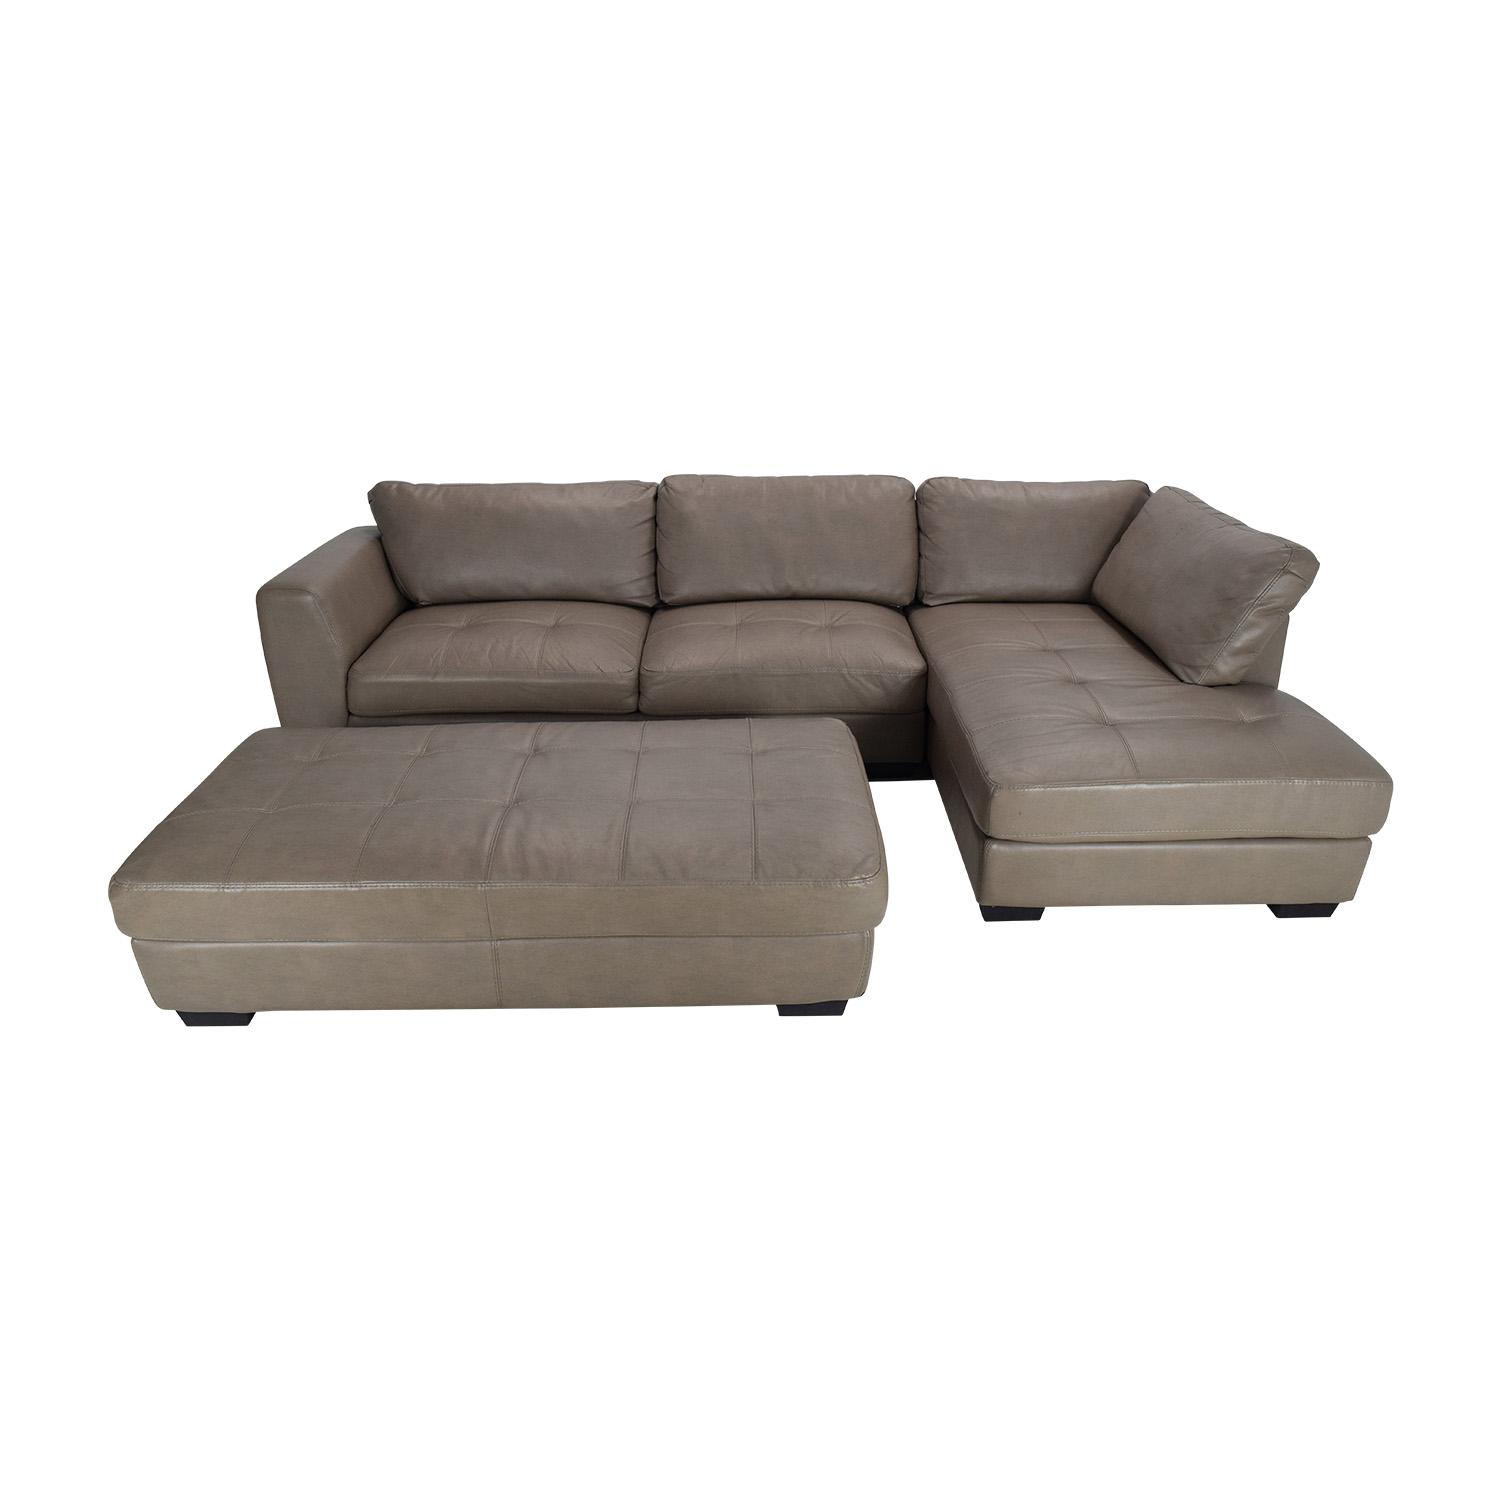 Terrific 50 Off Pellissima Luttrell Leather Sectional With Ottoman Sofas Gmtry Best Dining Table And Chair Ideas Images Gmtryco